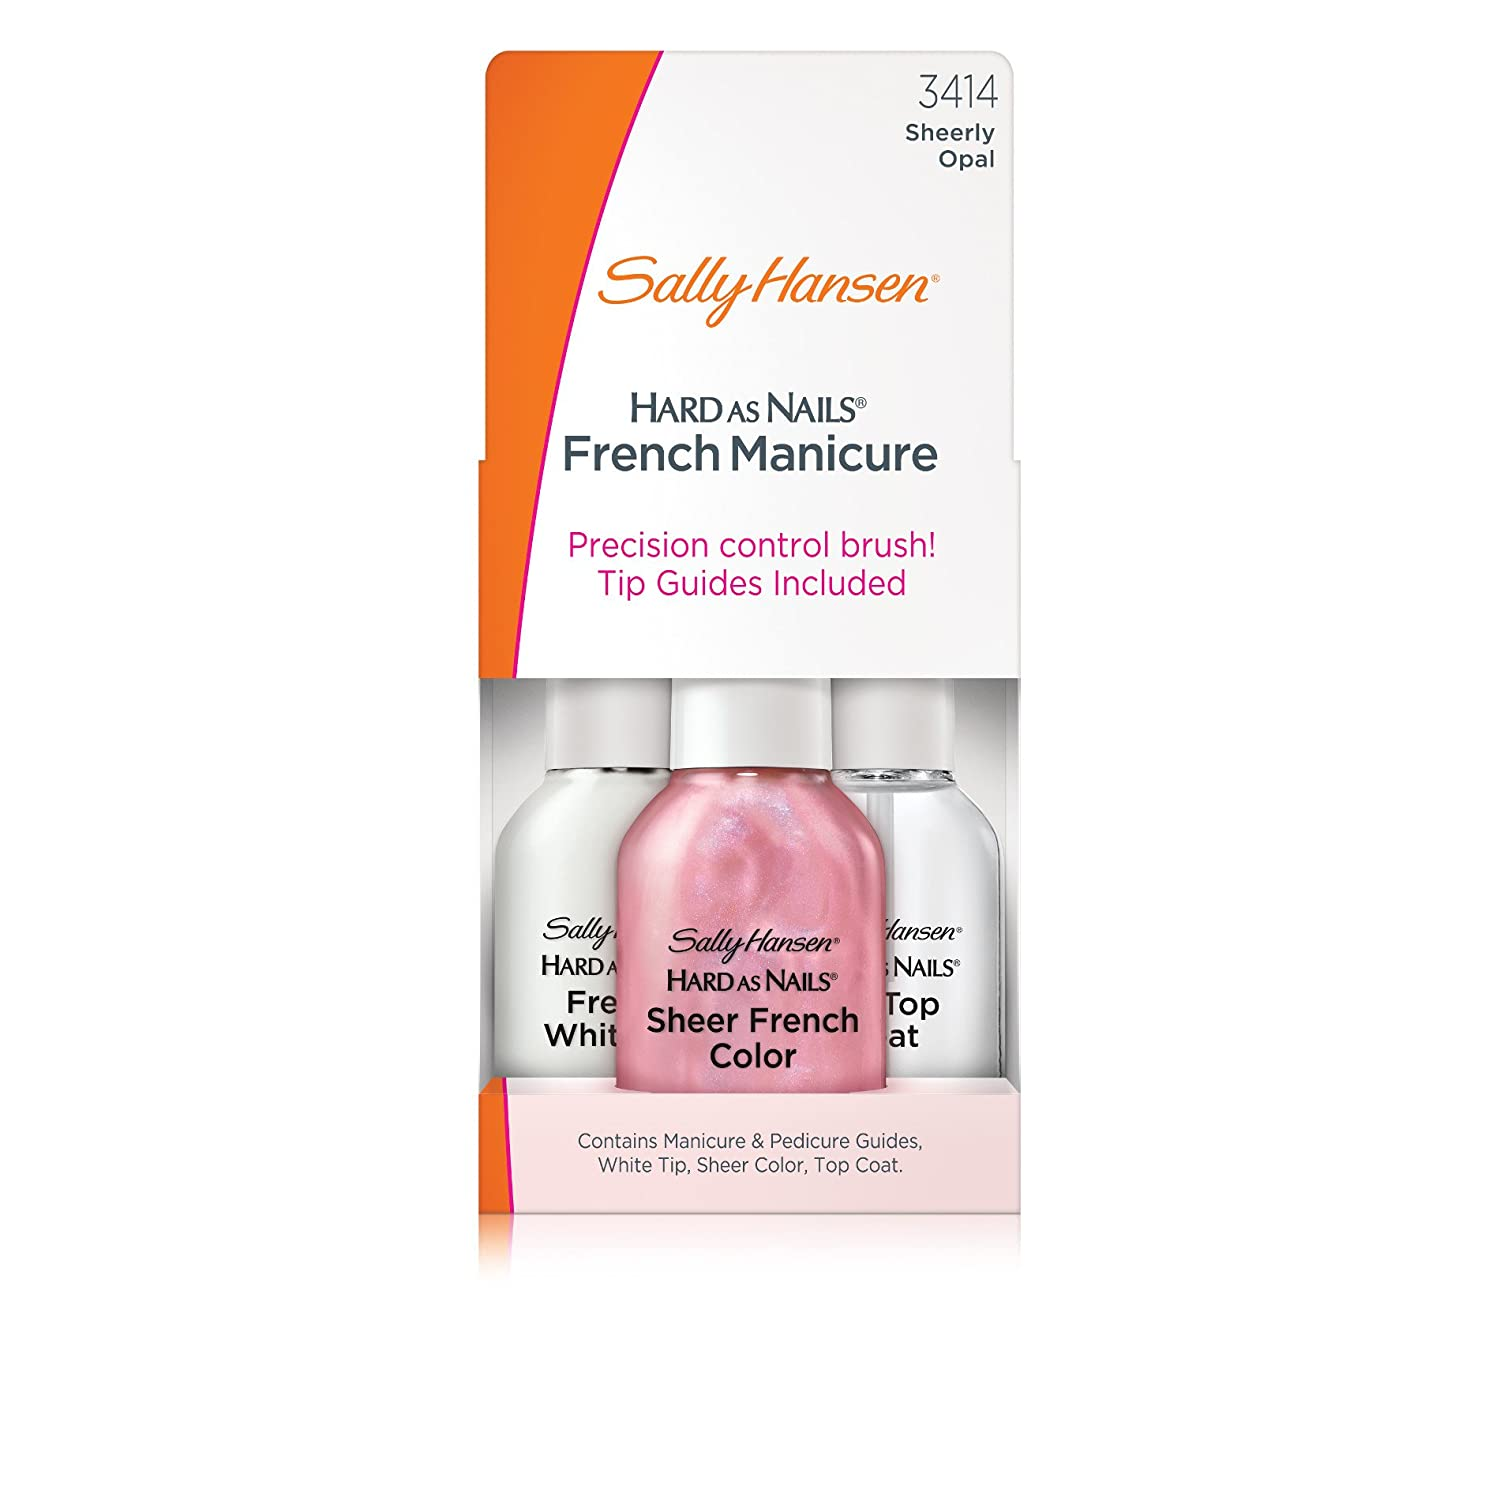 Sally Hansen Hard as Nails French Manicure, Sheerly Opal, 0.45 Oz, 2 ...